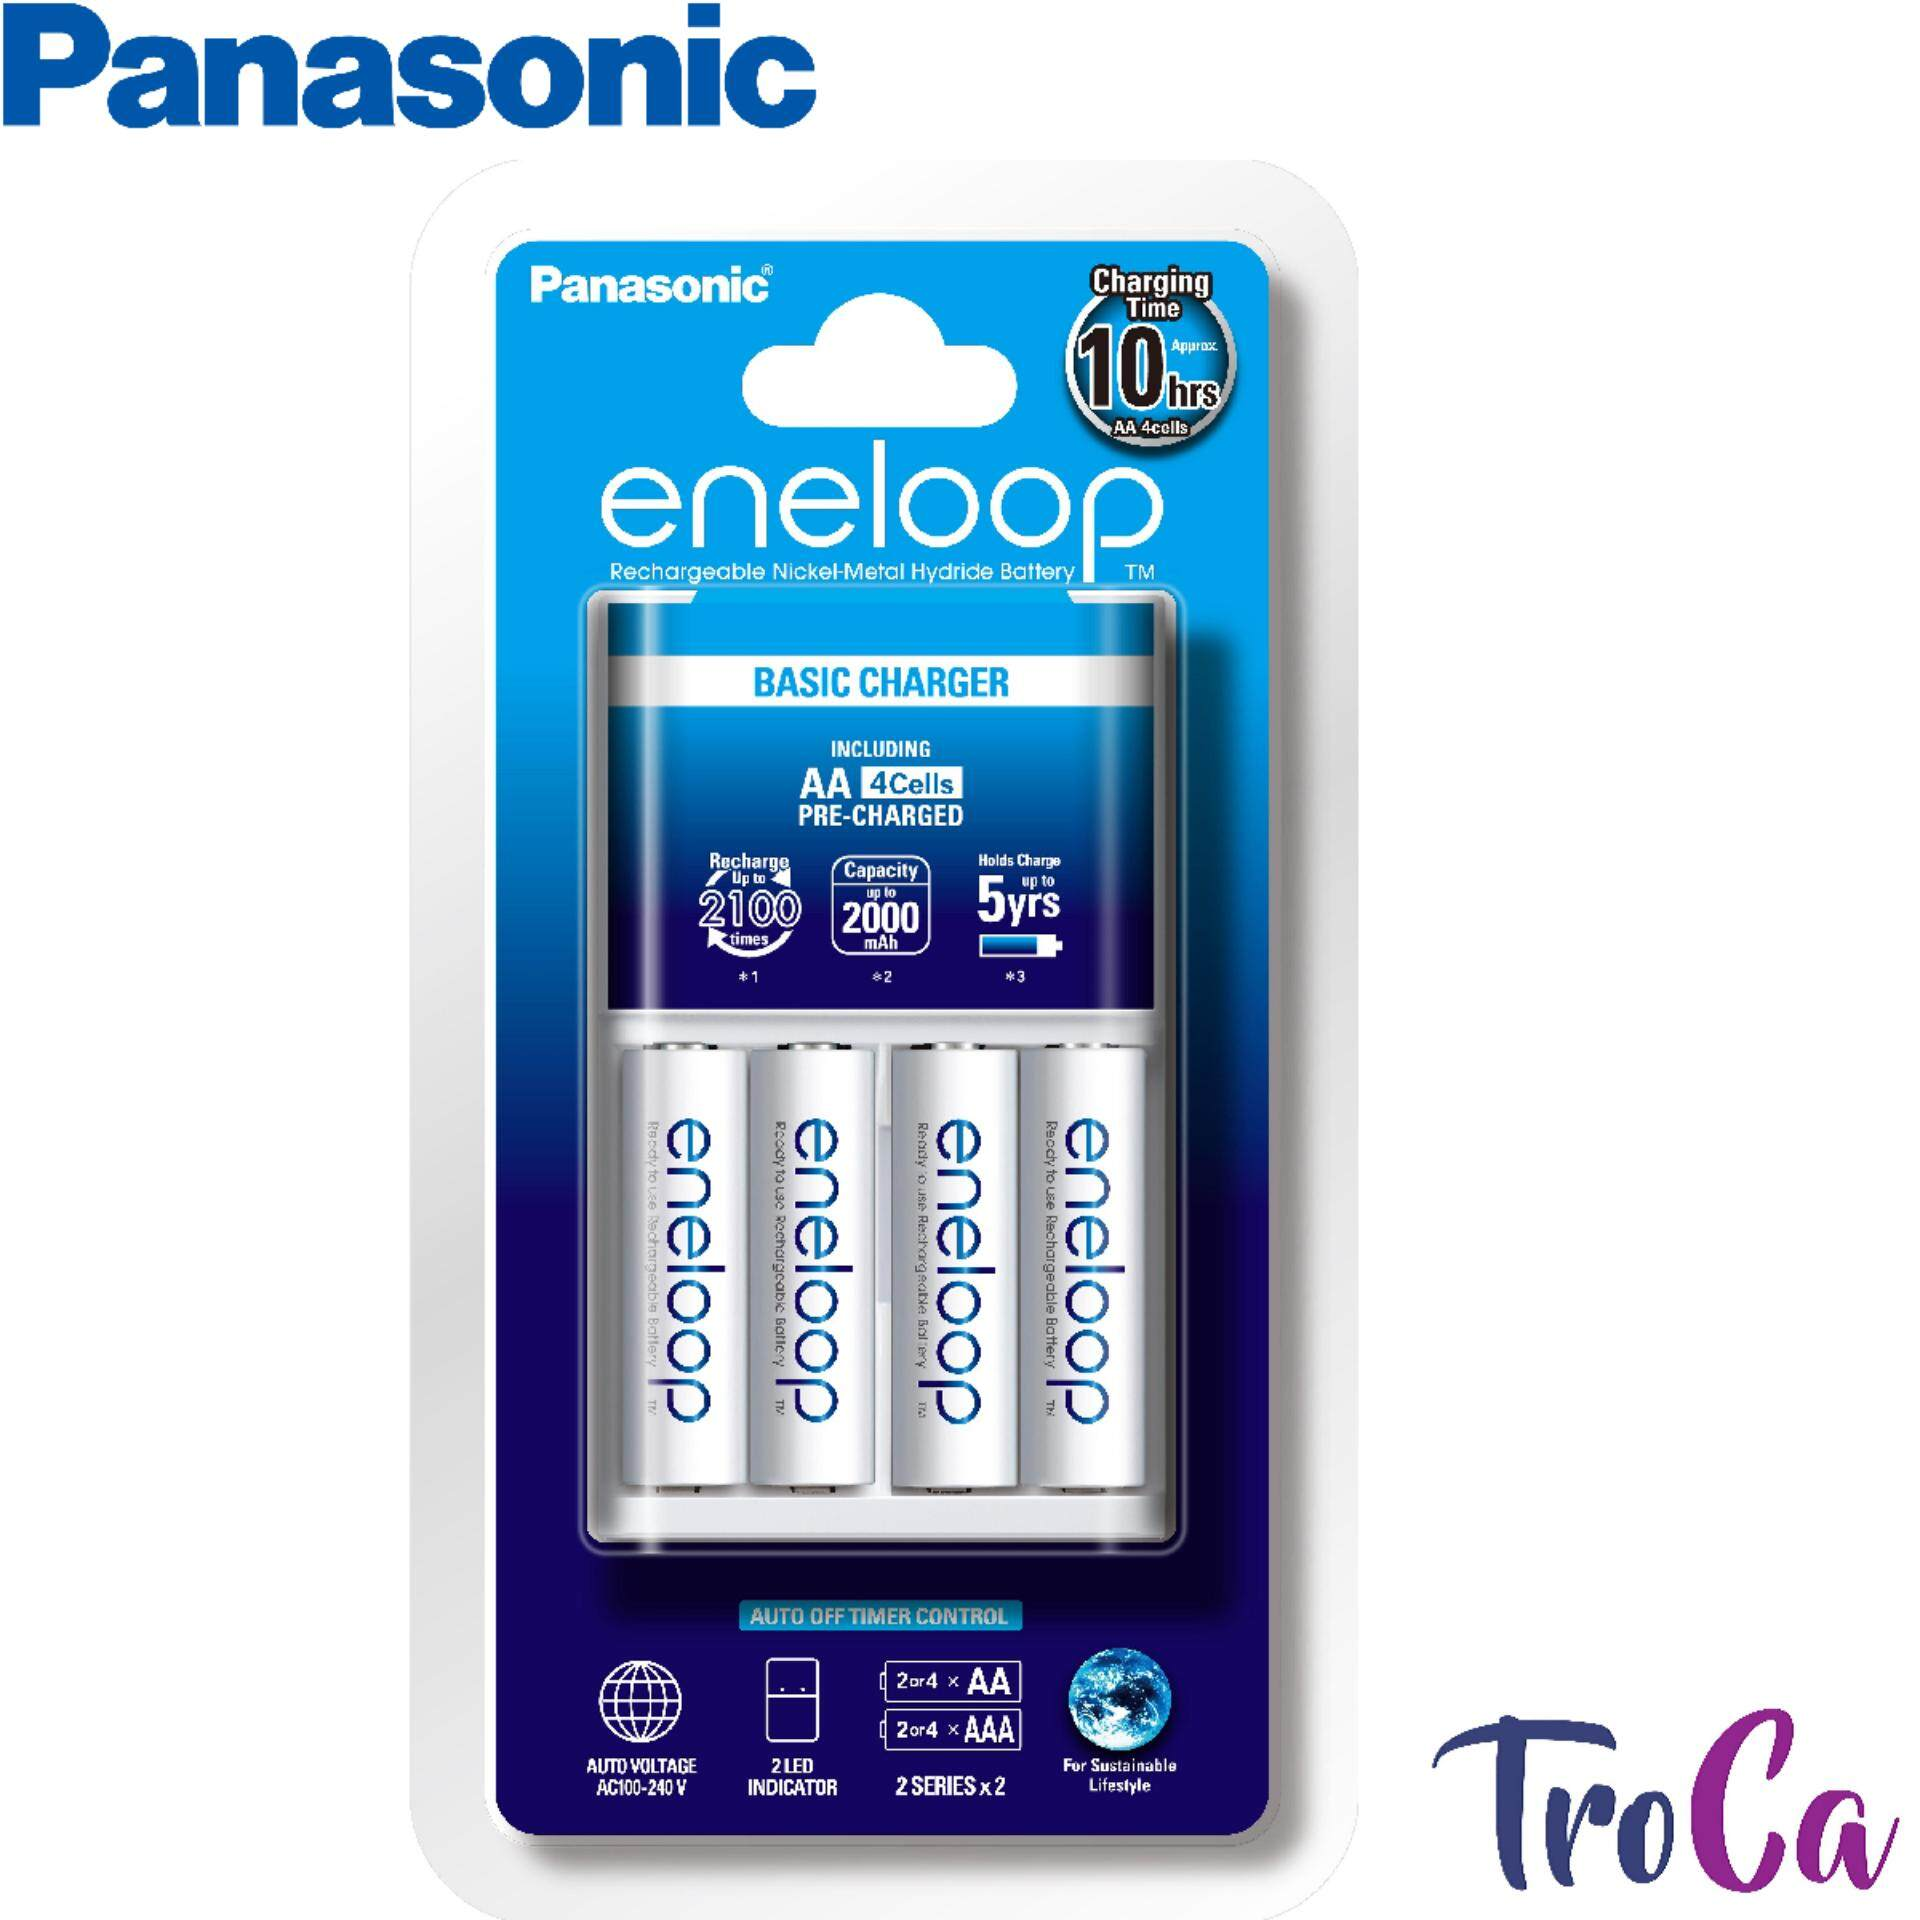 Panasonic Eneloop Basic Charger With 4 Cells Eneloop Rechargeable Battery (Panasonic Malaysia) Malaysia